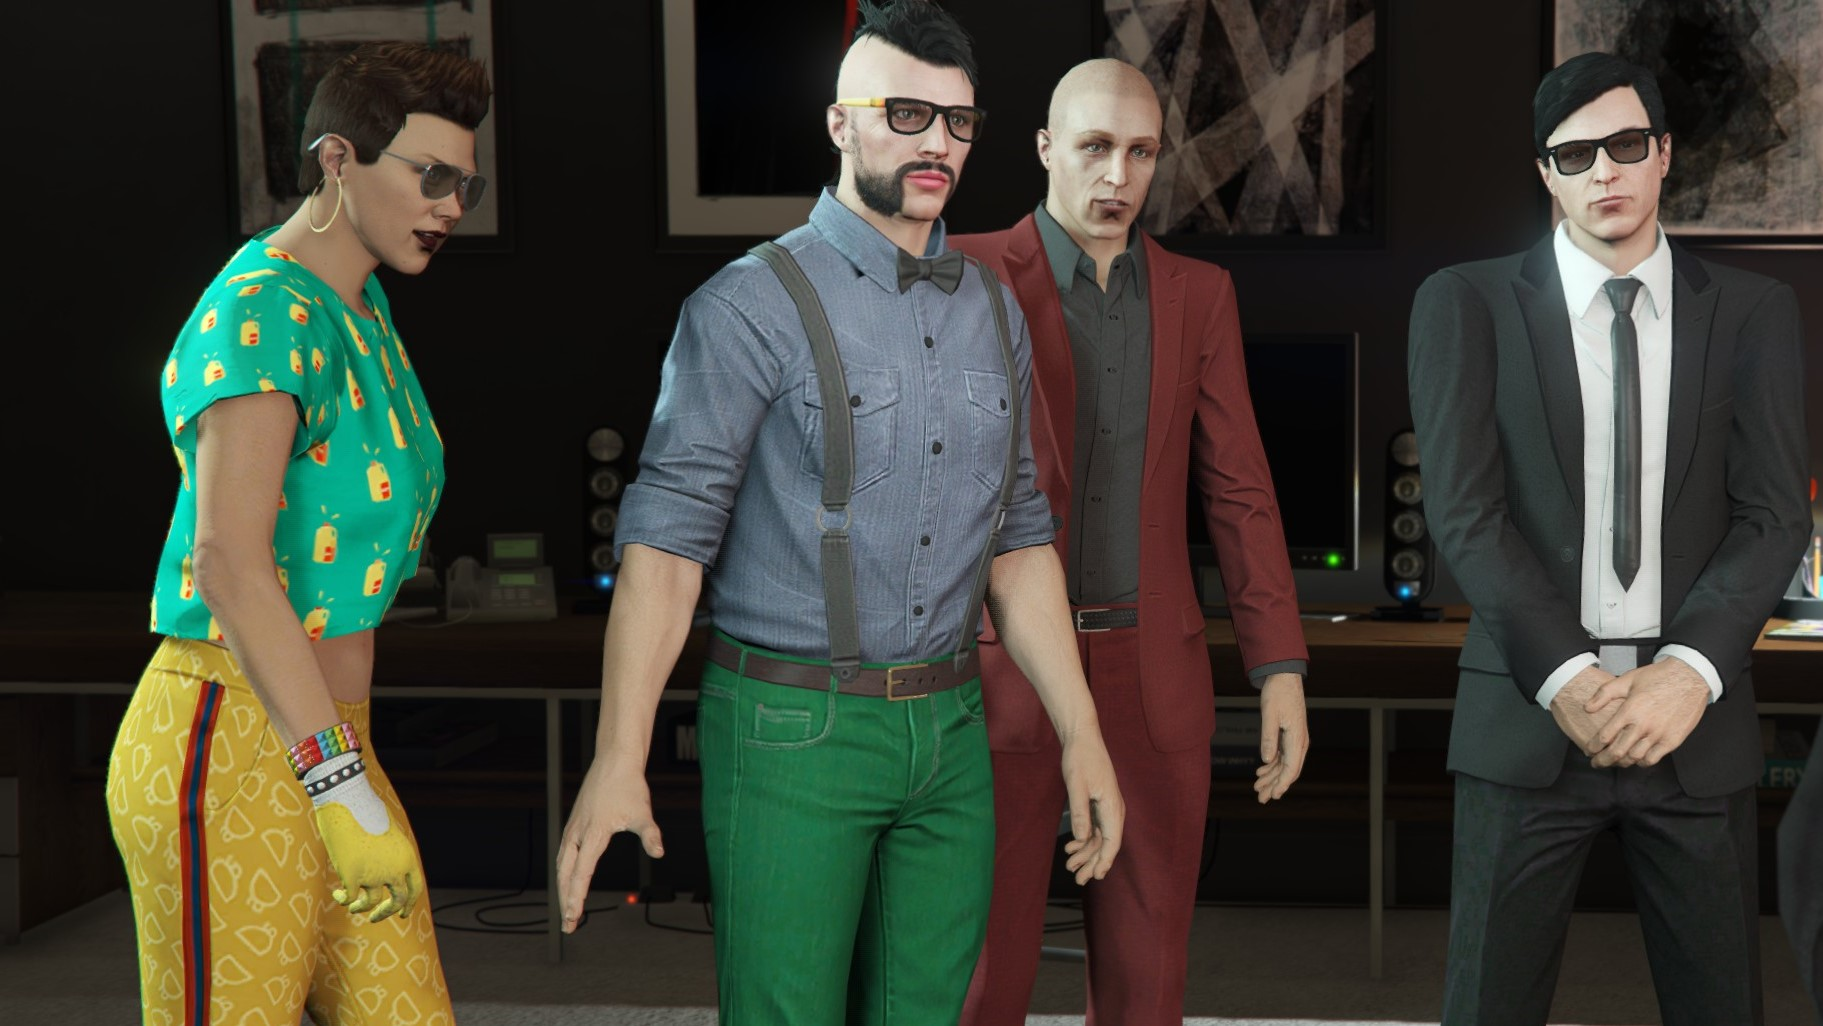 GTA Online makes half a billion dollars a year even though it's a hot mess